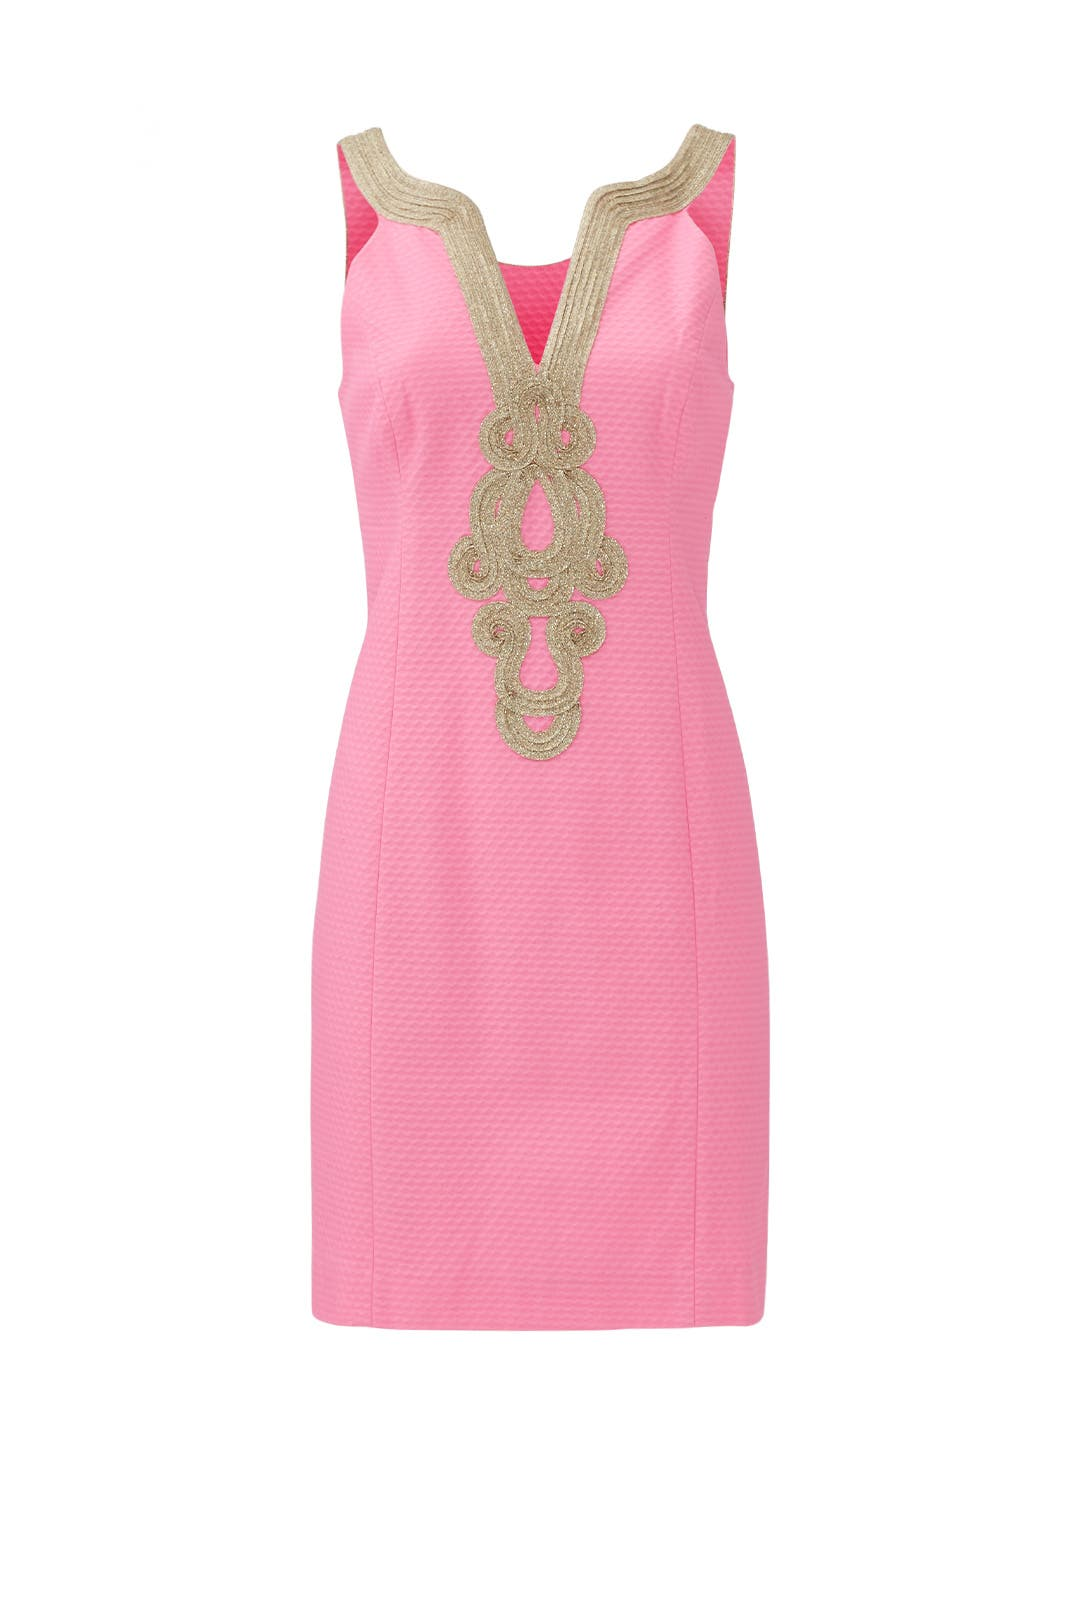 Pink Pout Emery Shift by Lilly Pulitzer